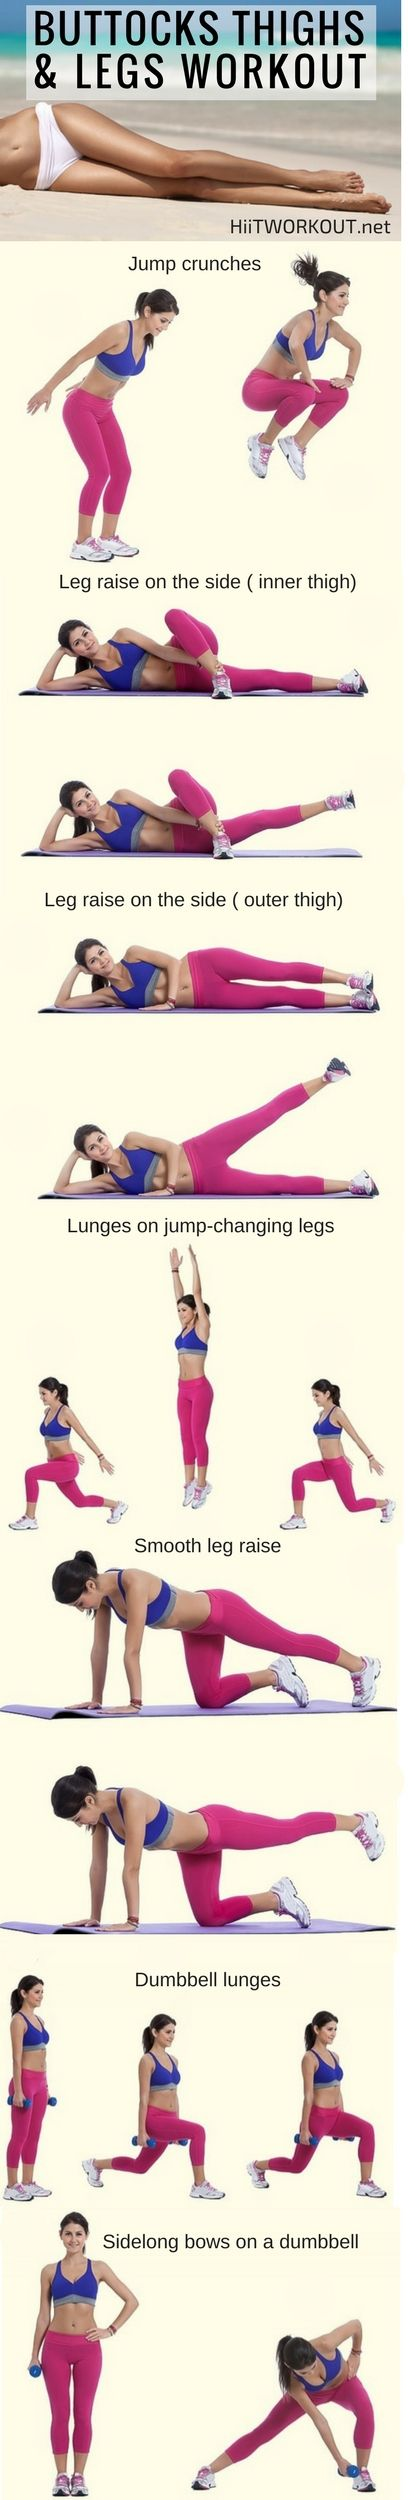 7 Simple Workouts for Perfect Buttocks, Thighs, and Legs